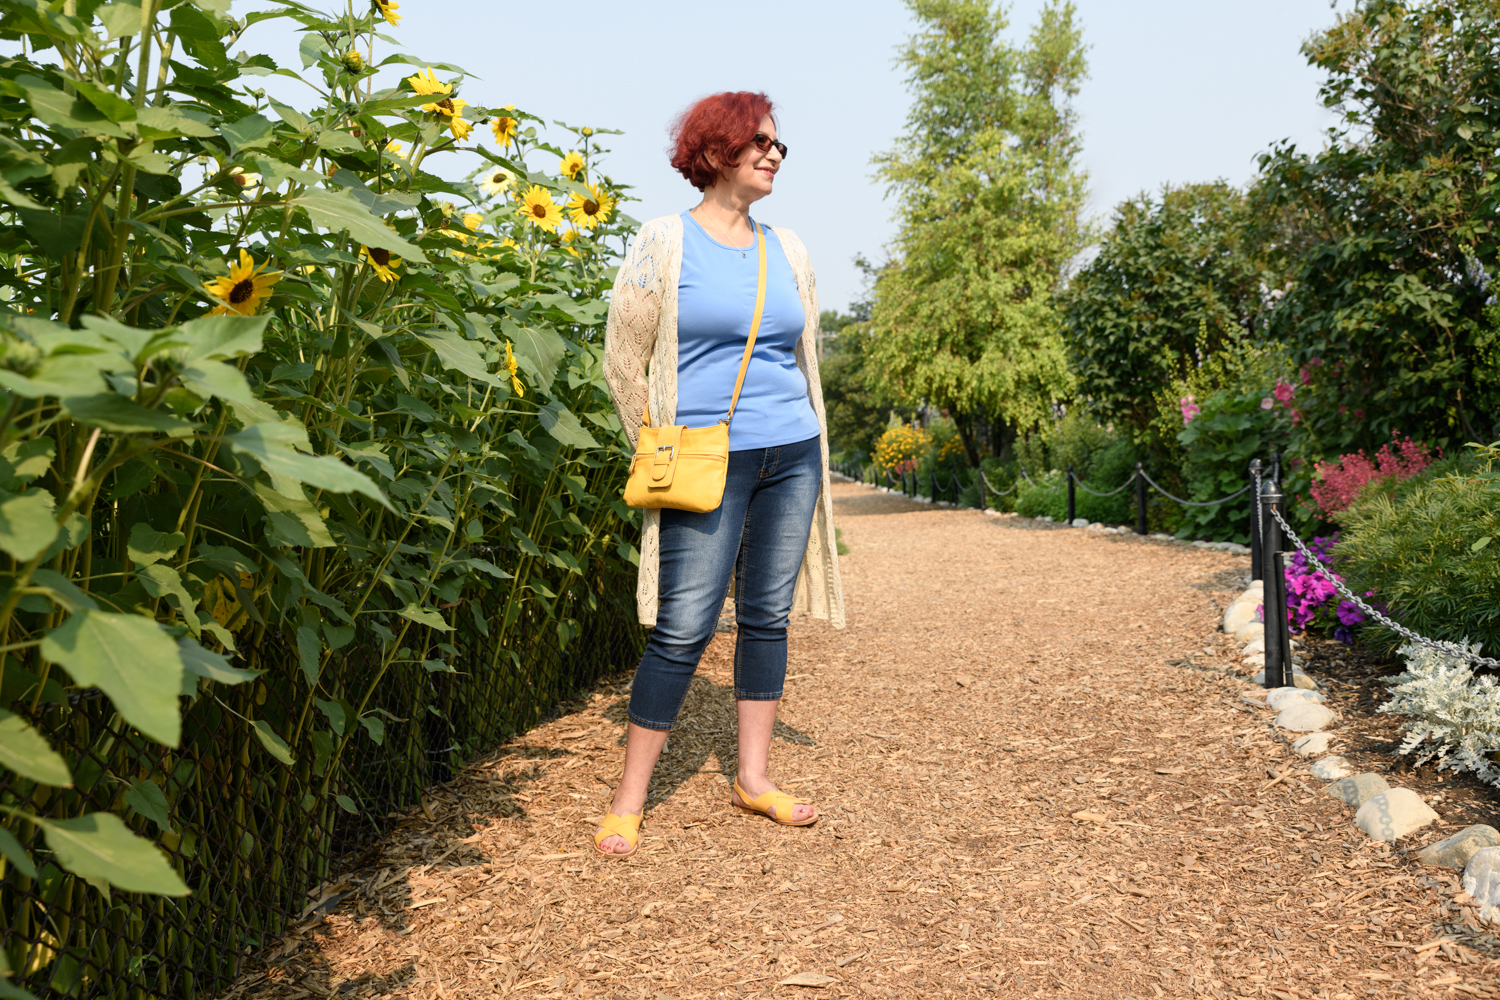 Laura stands besides sunflowers